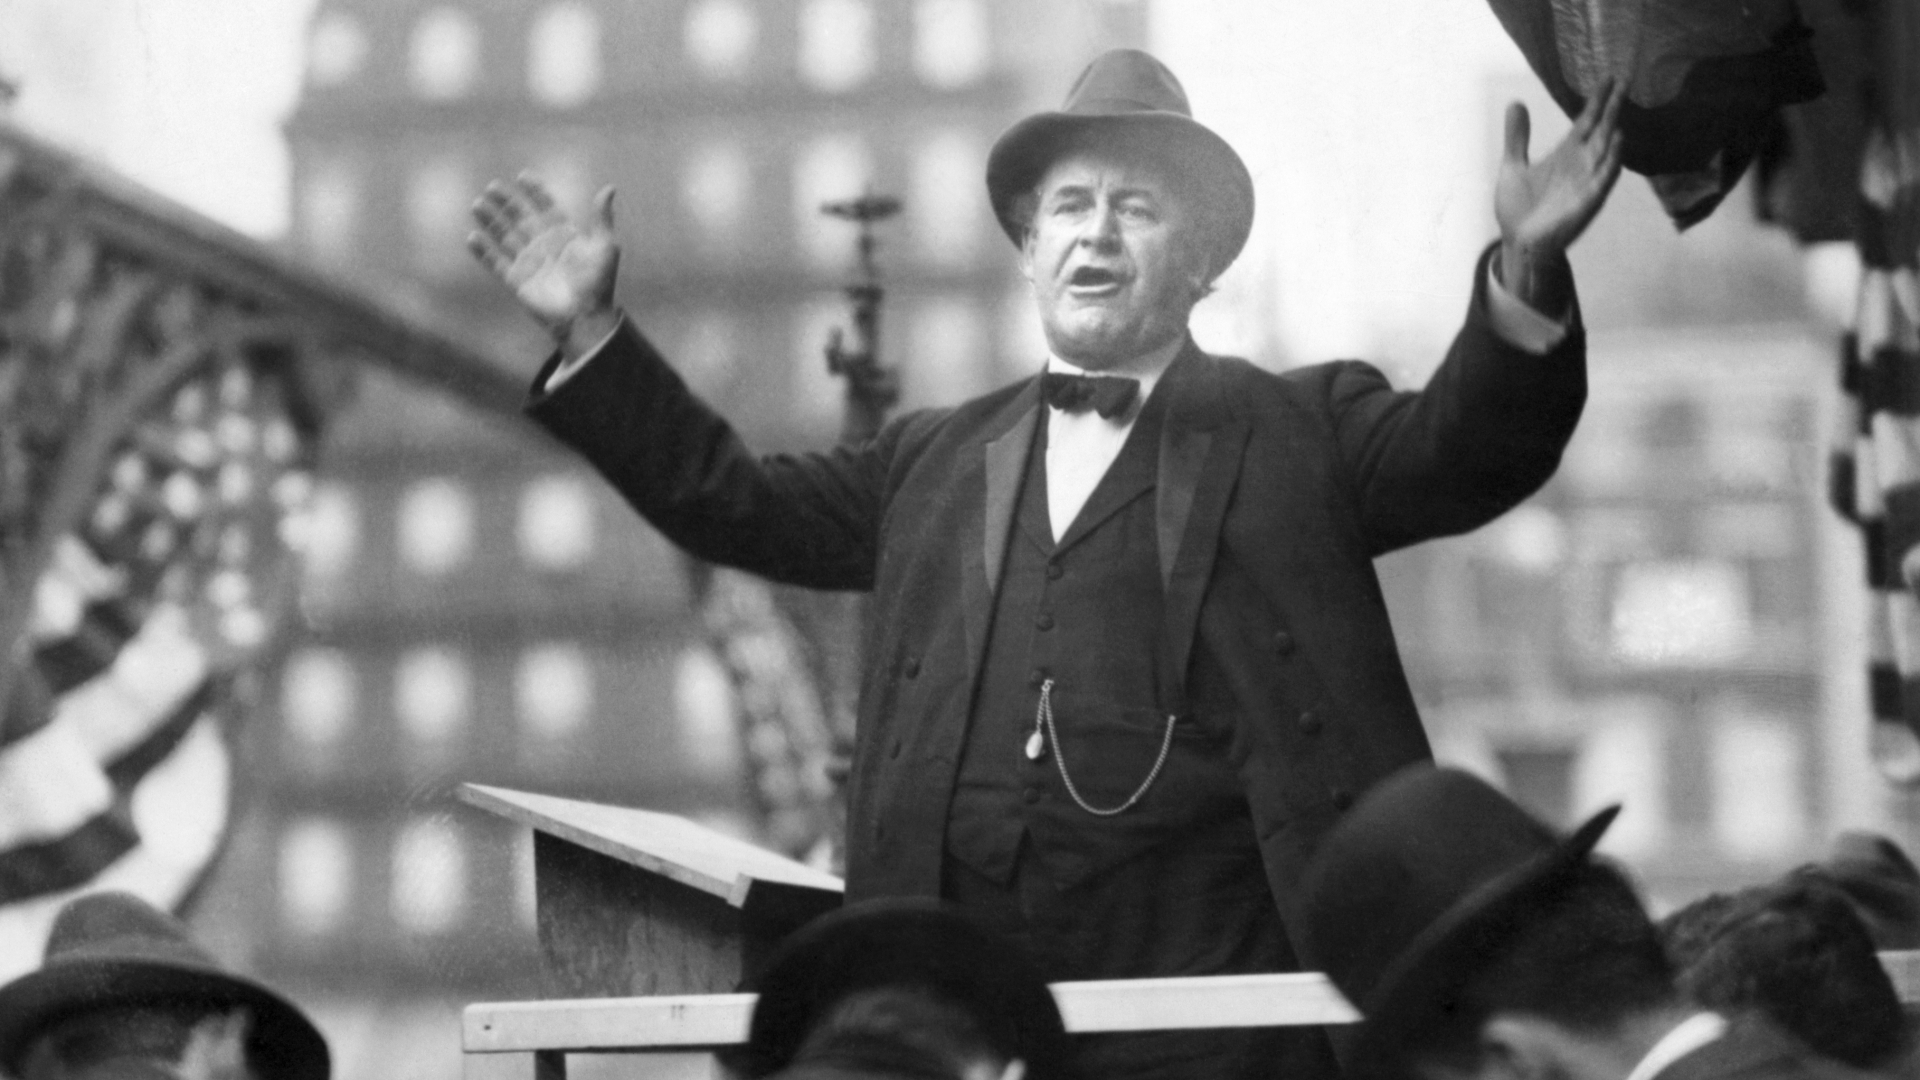 William Jennings Bryan, Democratic Presidential nominee, delivering a campaign speech in 1910. (Credit: Bettmann Archive/Getty Images)